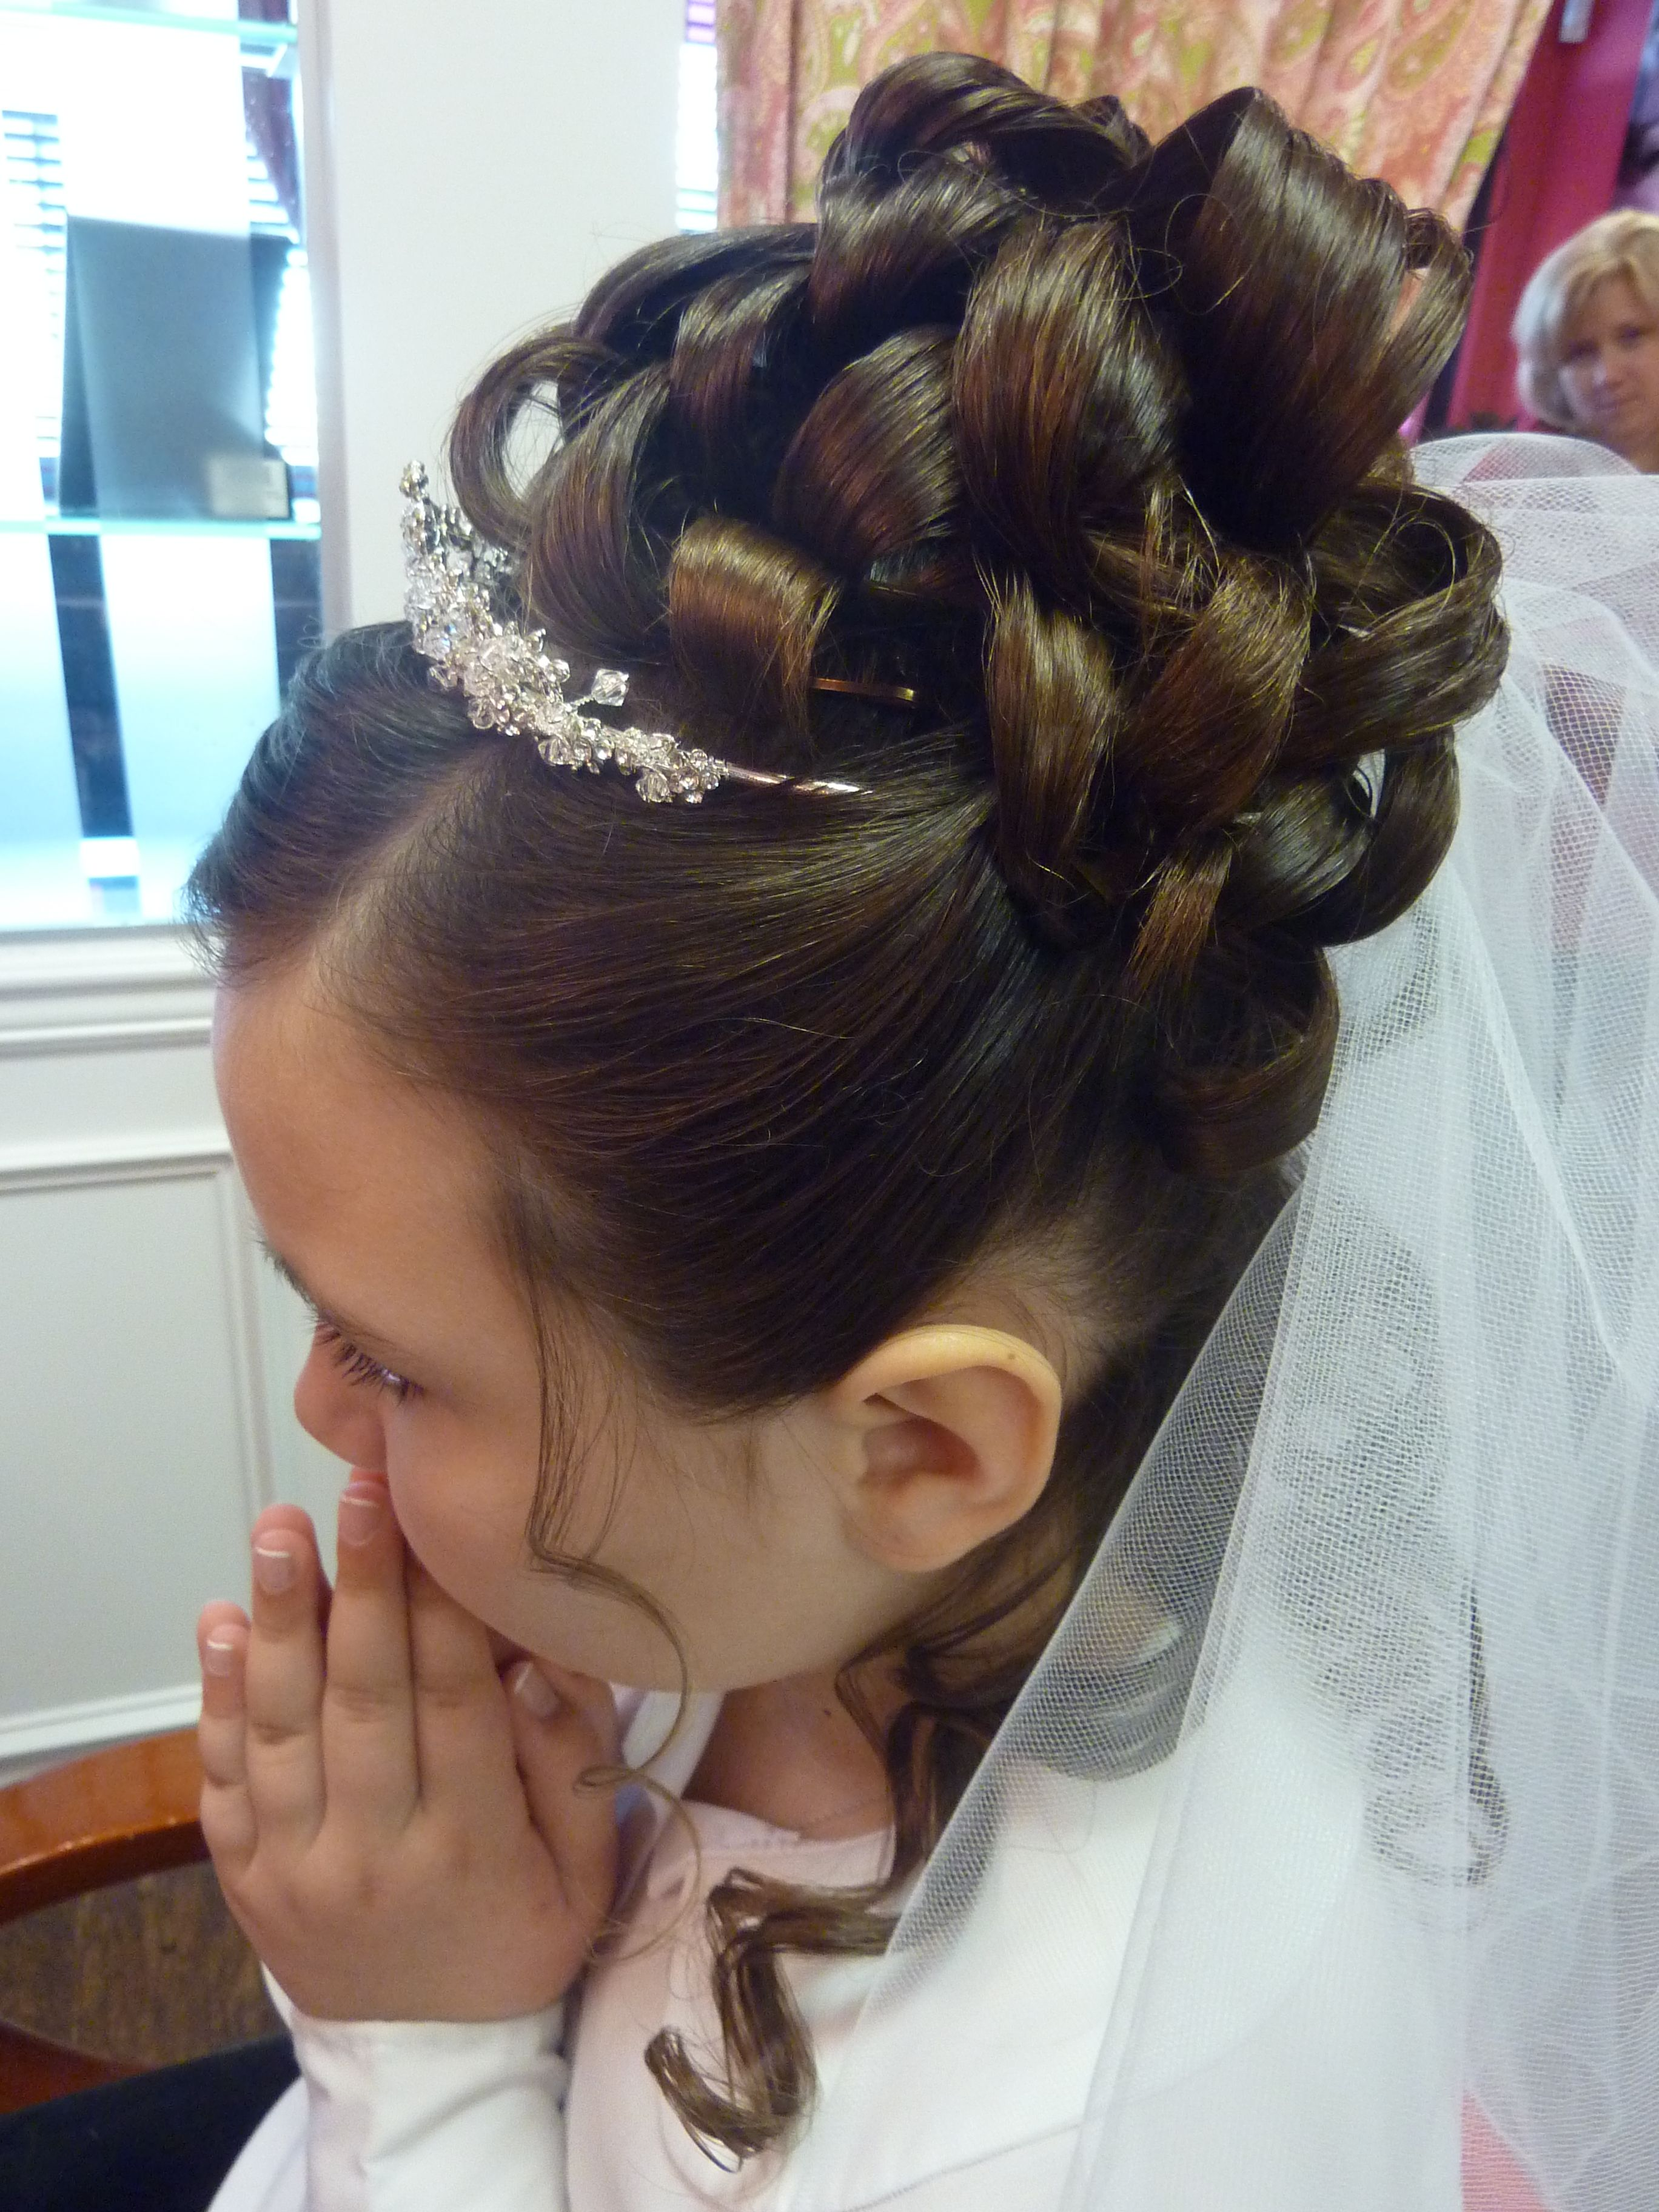 Pin By Seriously Spoiled On Hair Styling First Communion Hairstyles Hair Styles Communion Hairstyles